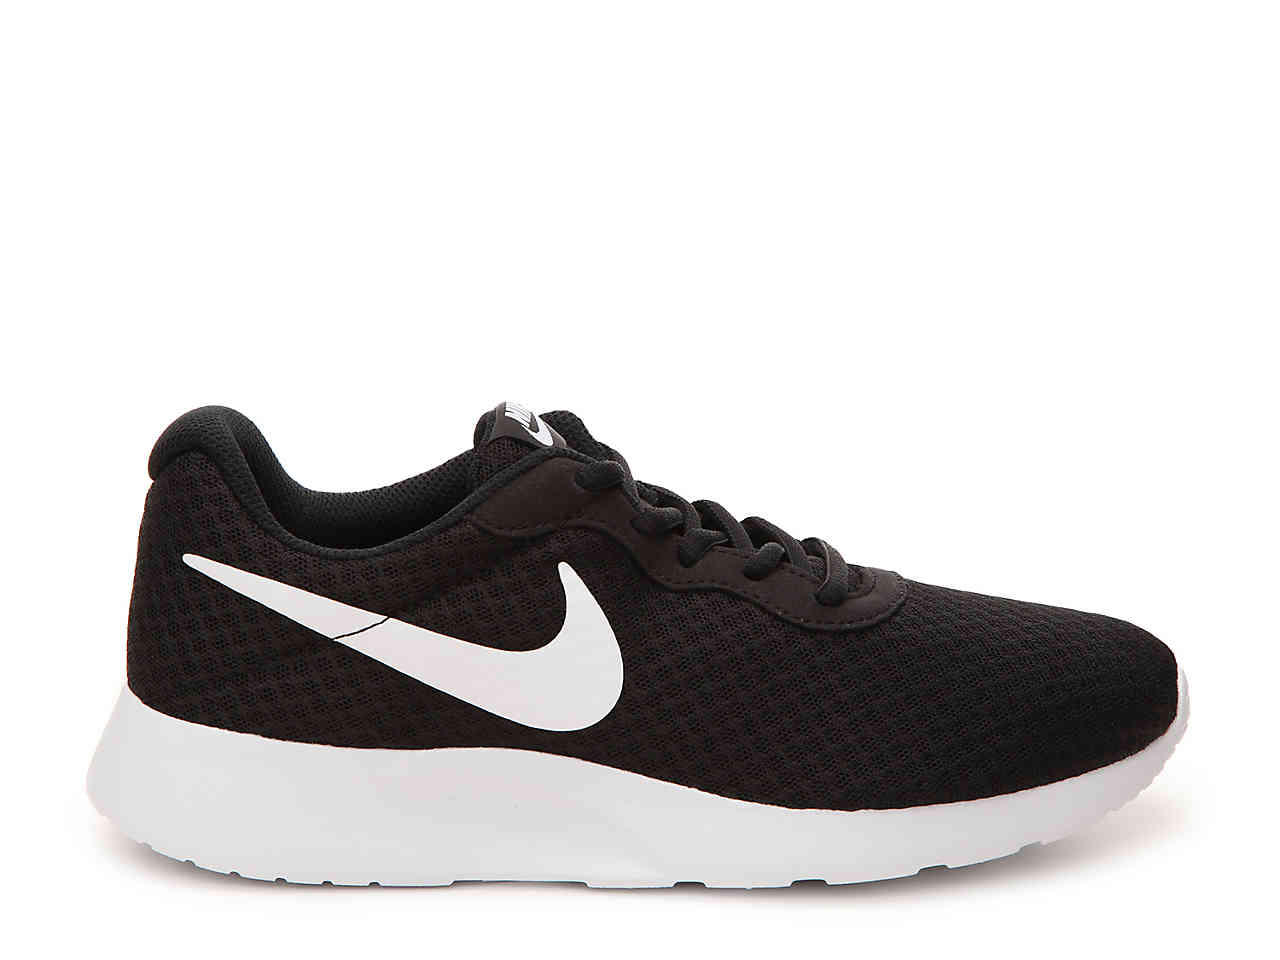 944404b4a09 Black And White Nike Sneakers   Buy Nike Sneakers   Shoes